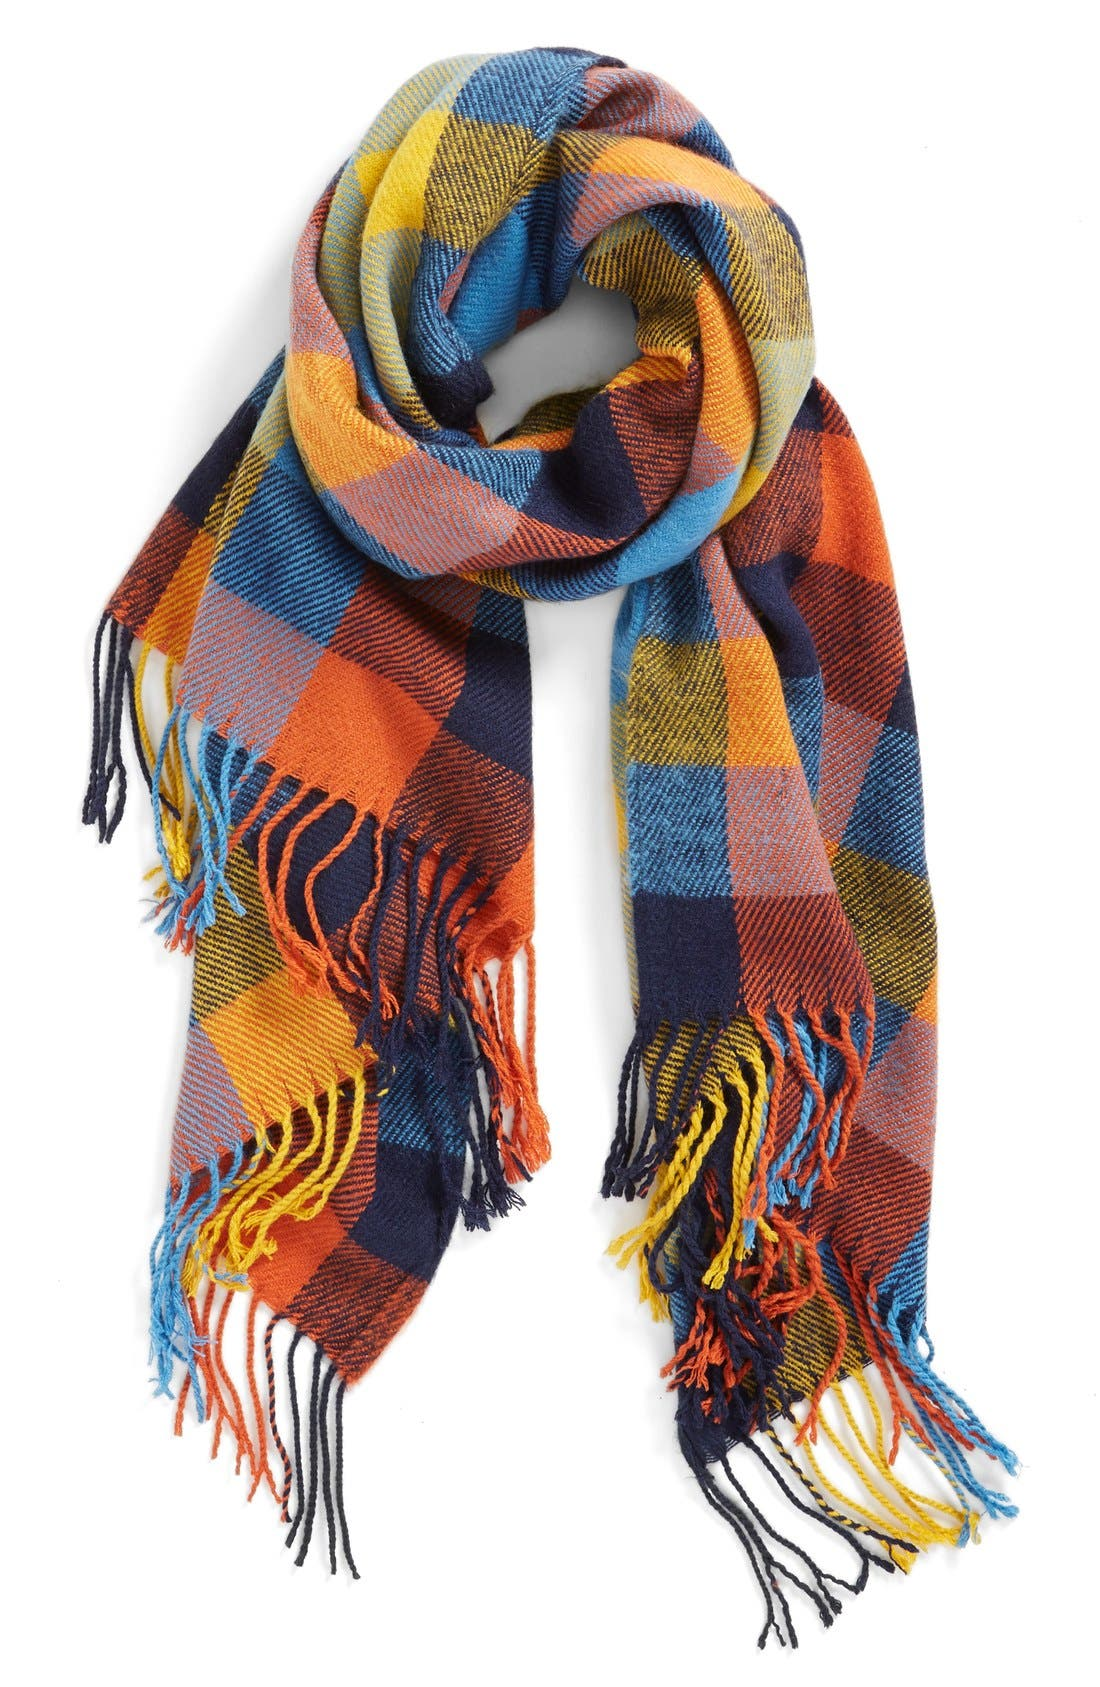 RENÉE'S ACCESSORIES Renee's Accessories Plaid Fringe Scarf, Main, color, 400